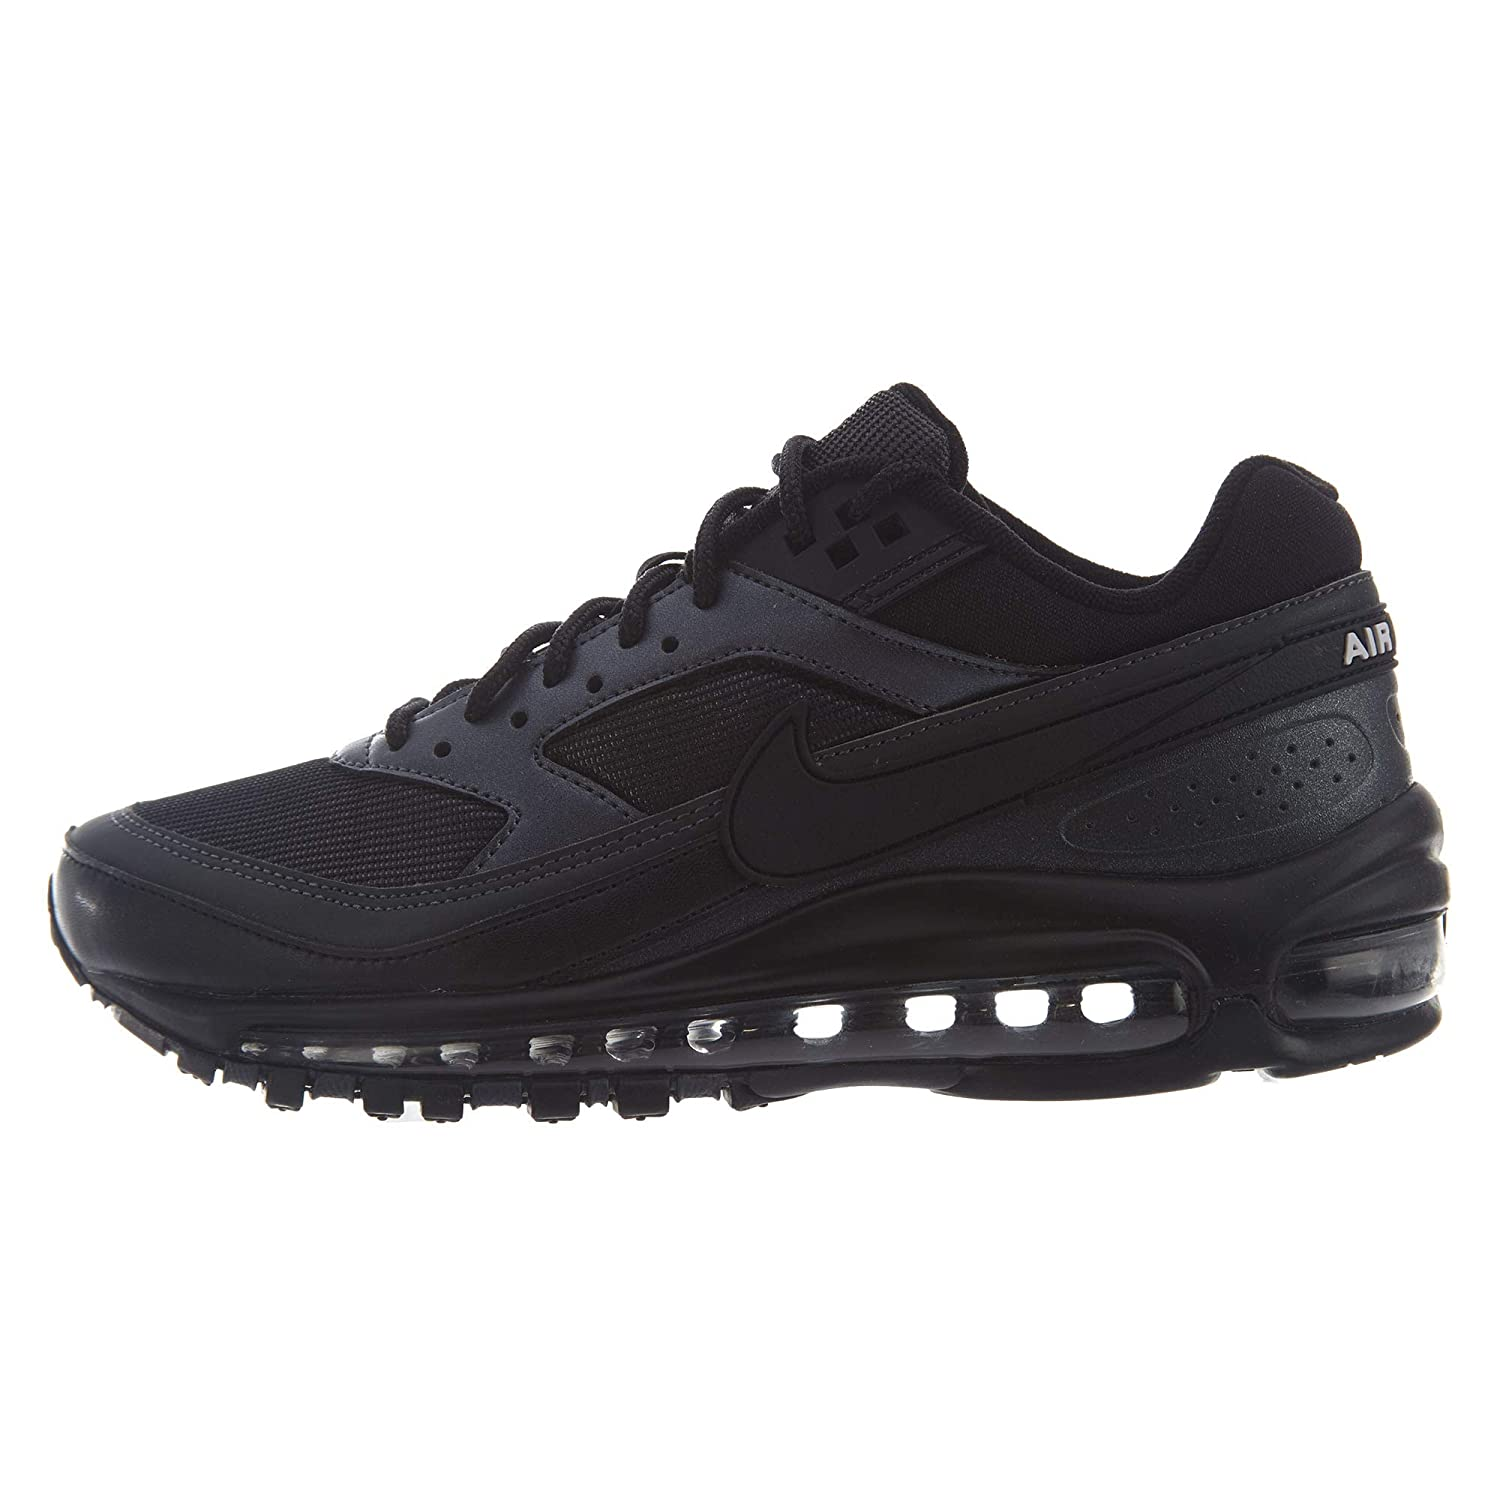 new styles 83e00 51aab Amazon.com   Nike Air Max 90 Mens Running Shoes   Road Running